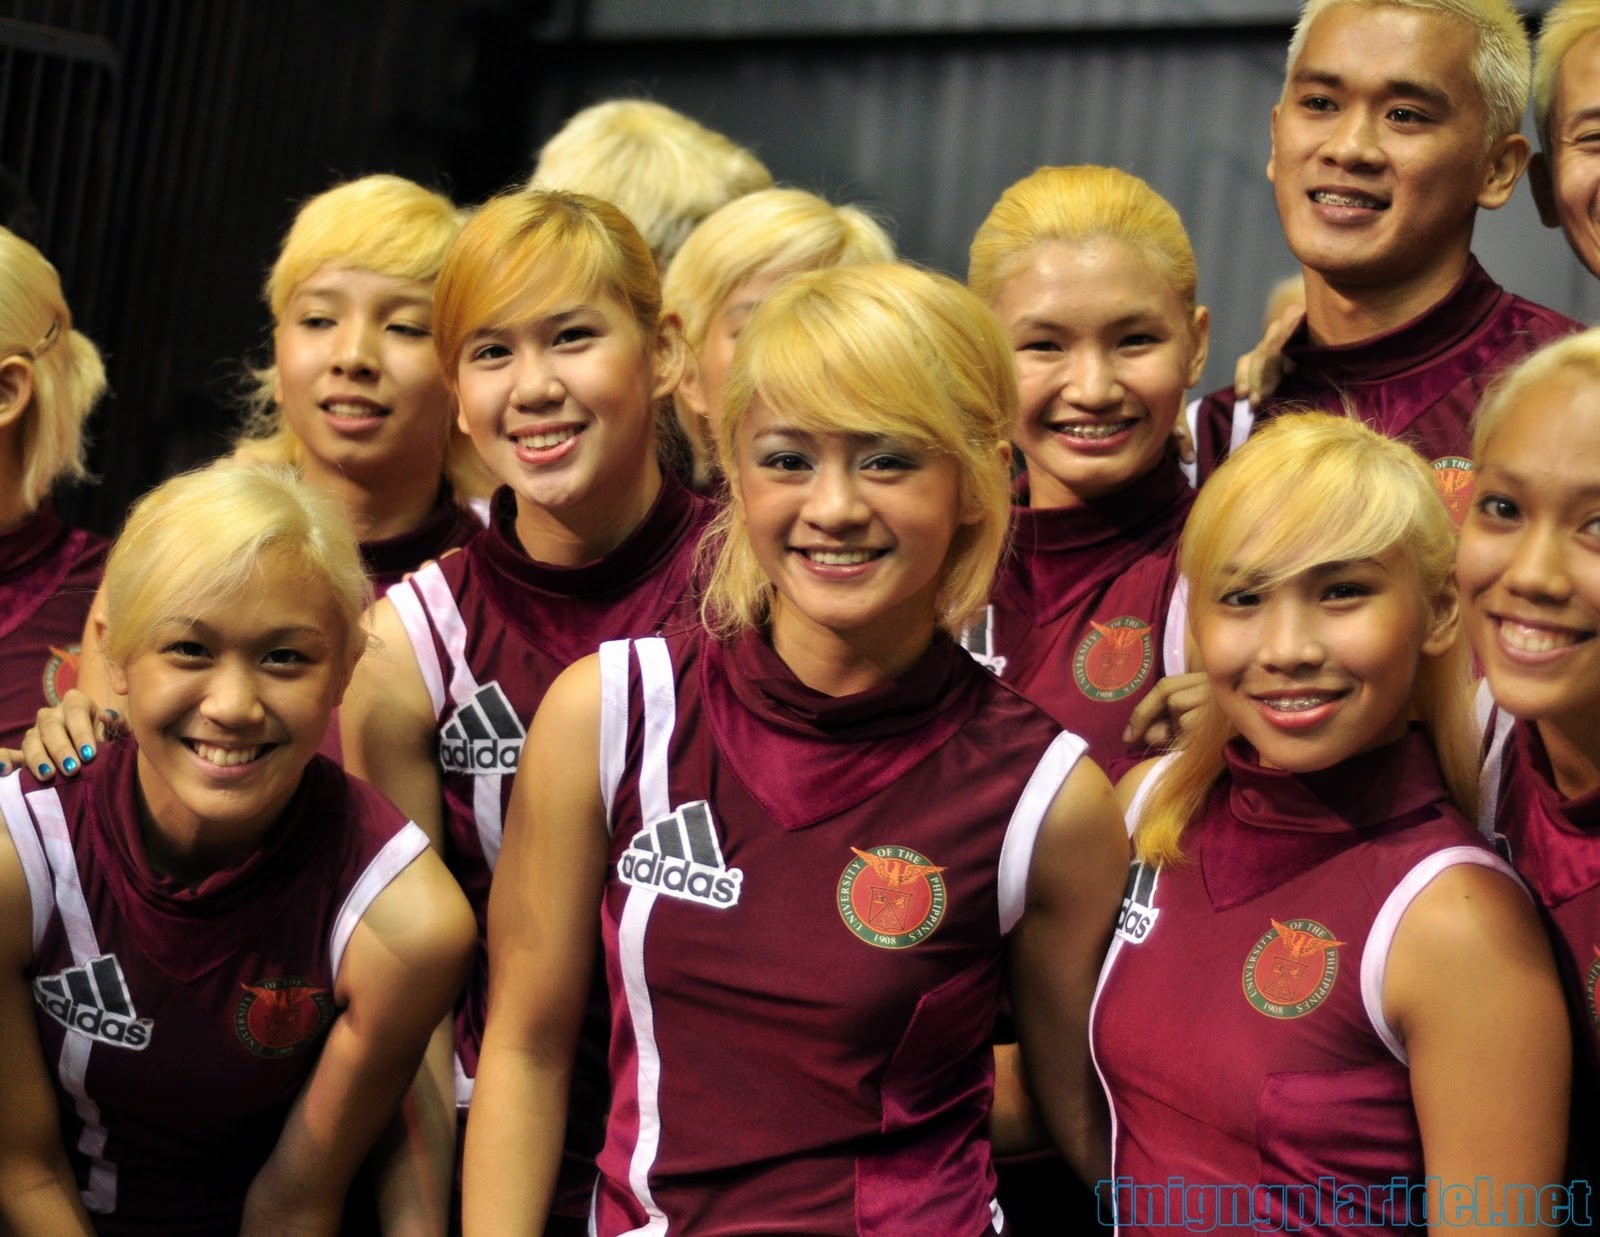 http://3.bp.blogspot.com/-slPS6_0p2uQ/TnWWfXBa03I/AAAAAAAACCo/x4K7-5XqJgk/s1600/UP-Pep-Squad-winner-2011-UAAP-Cheerdance-Competition.jpg